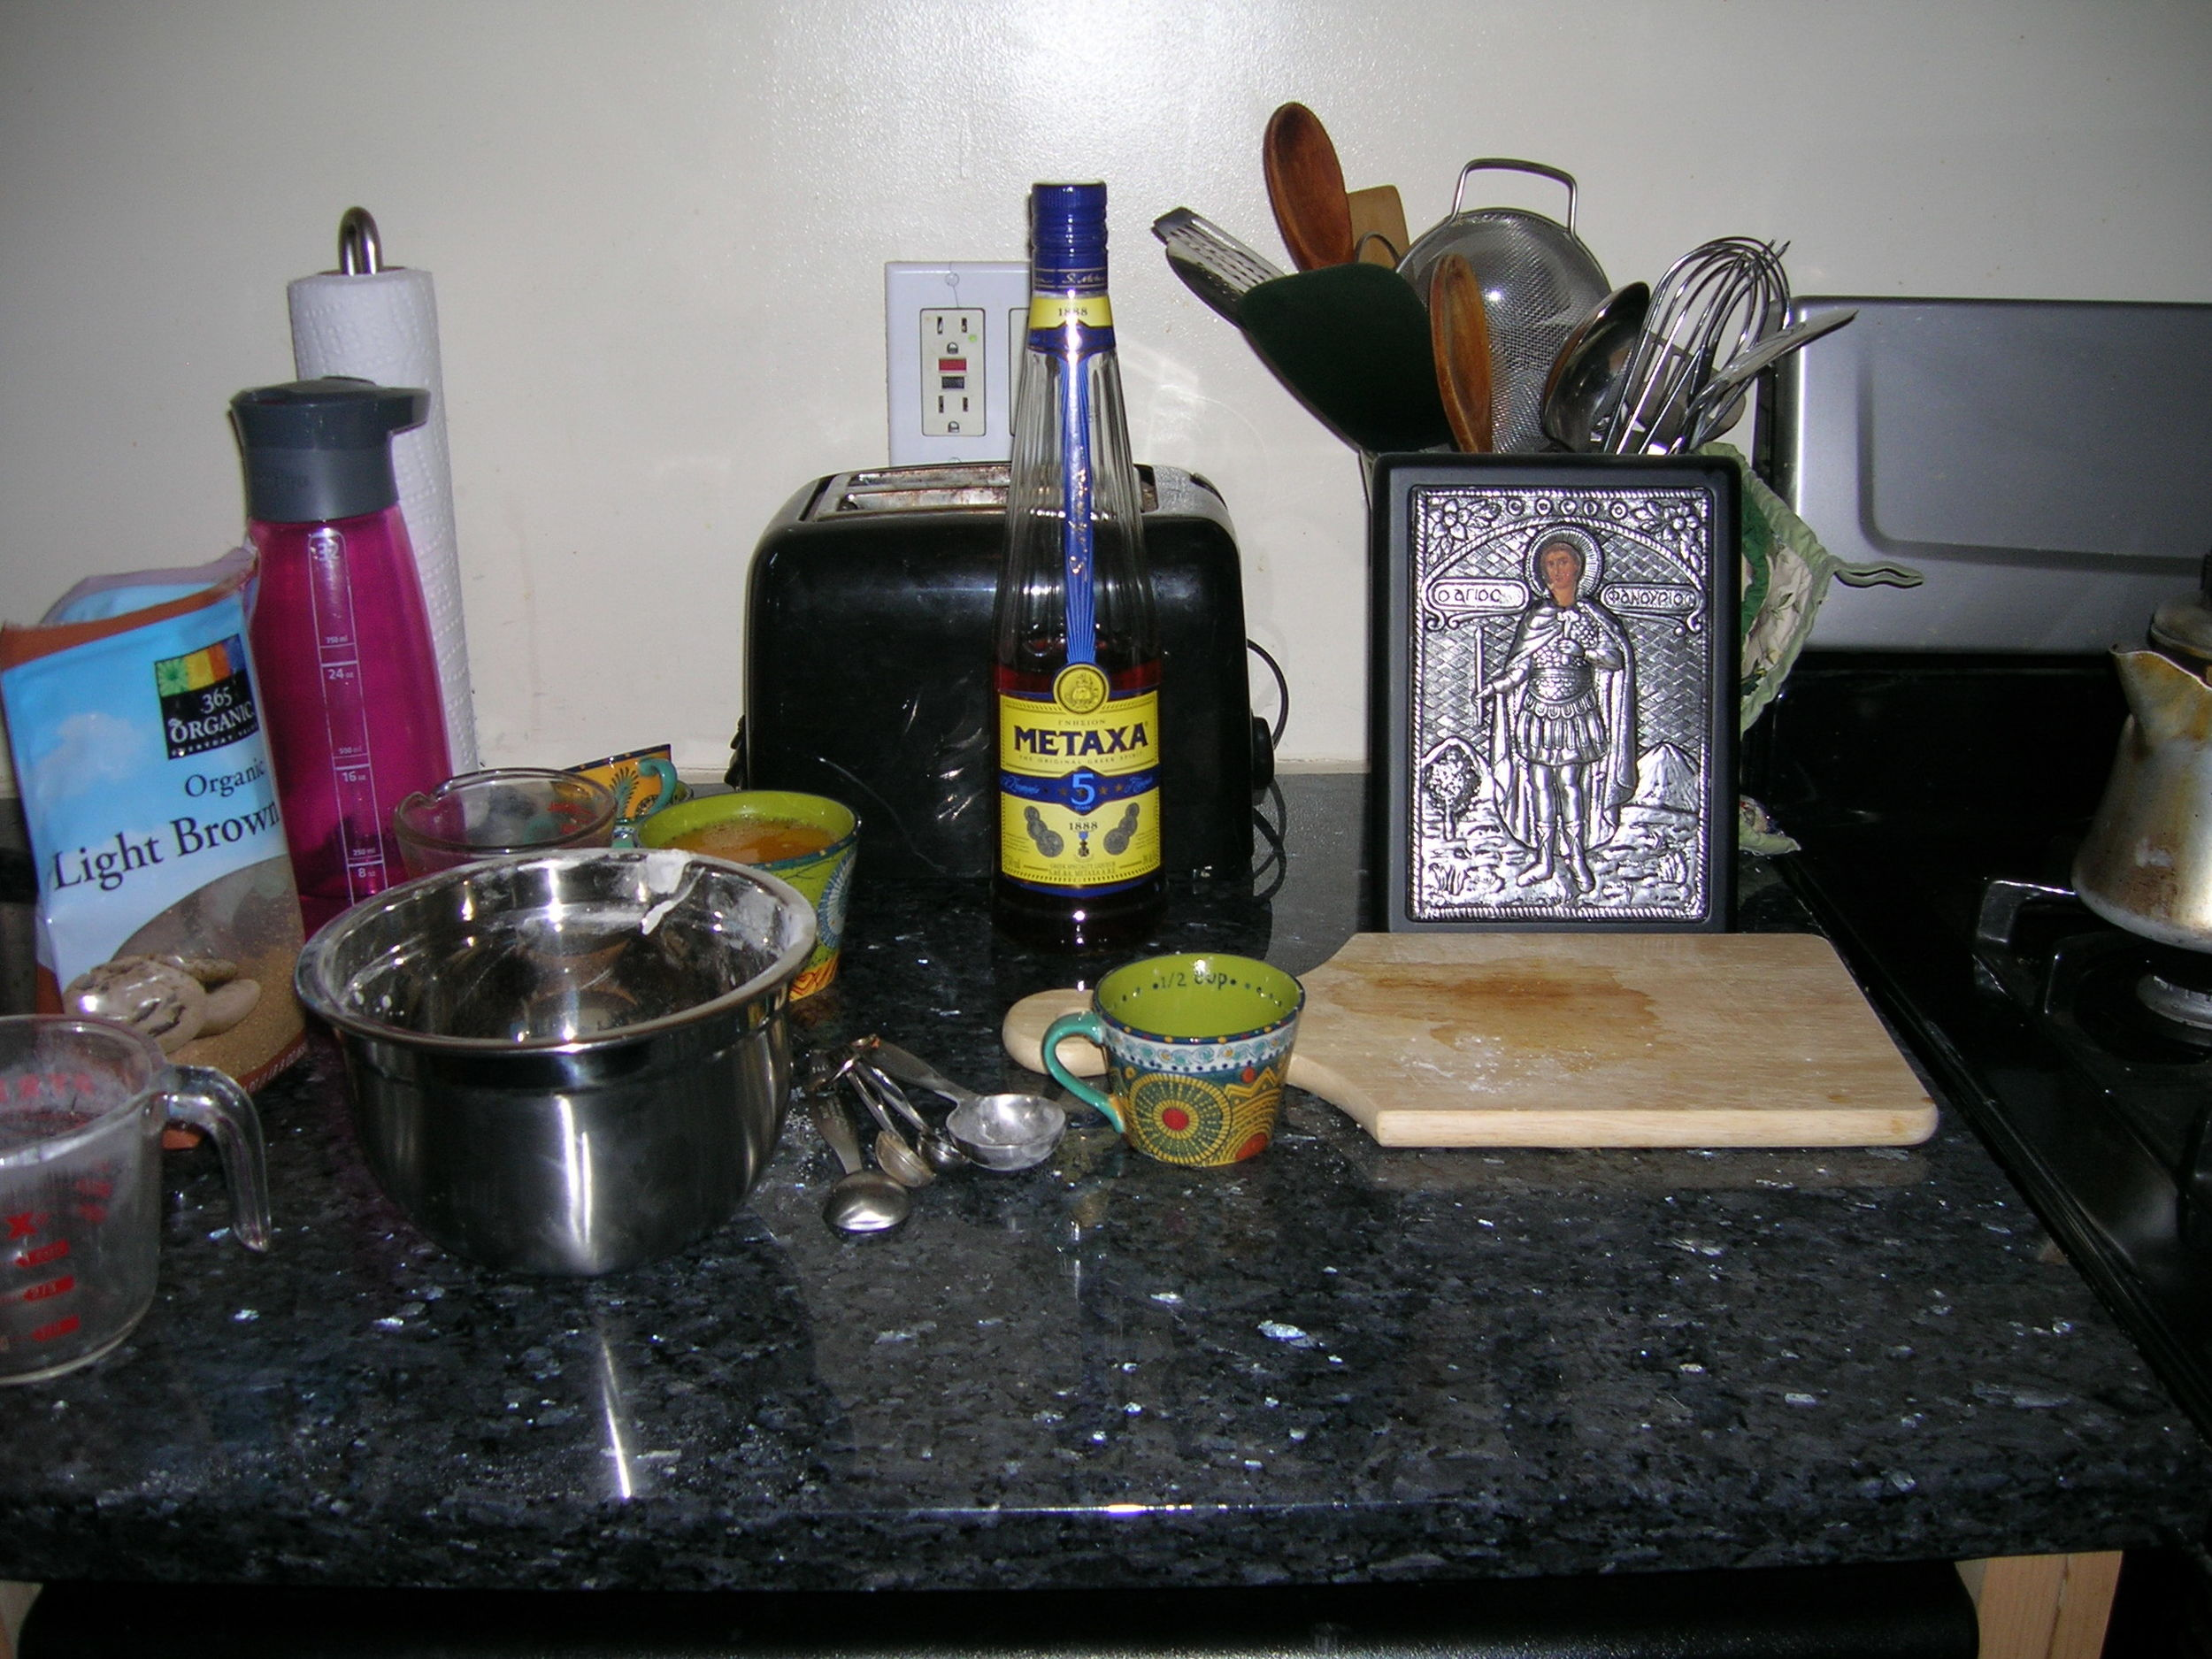 I was drinking water from the pink bottle. The Metaxa brandy was for the cake. ;)